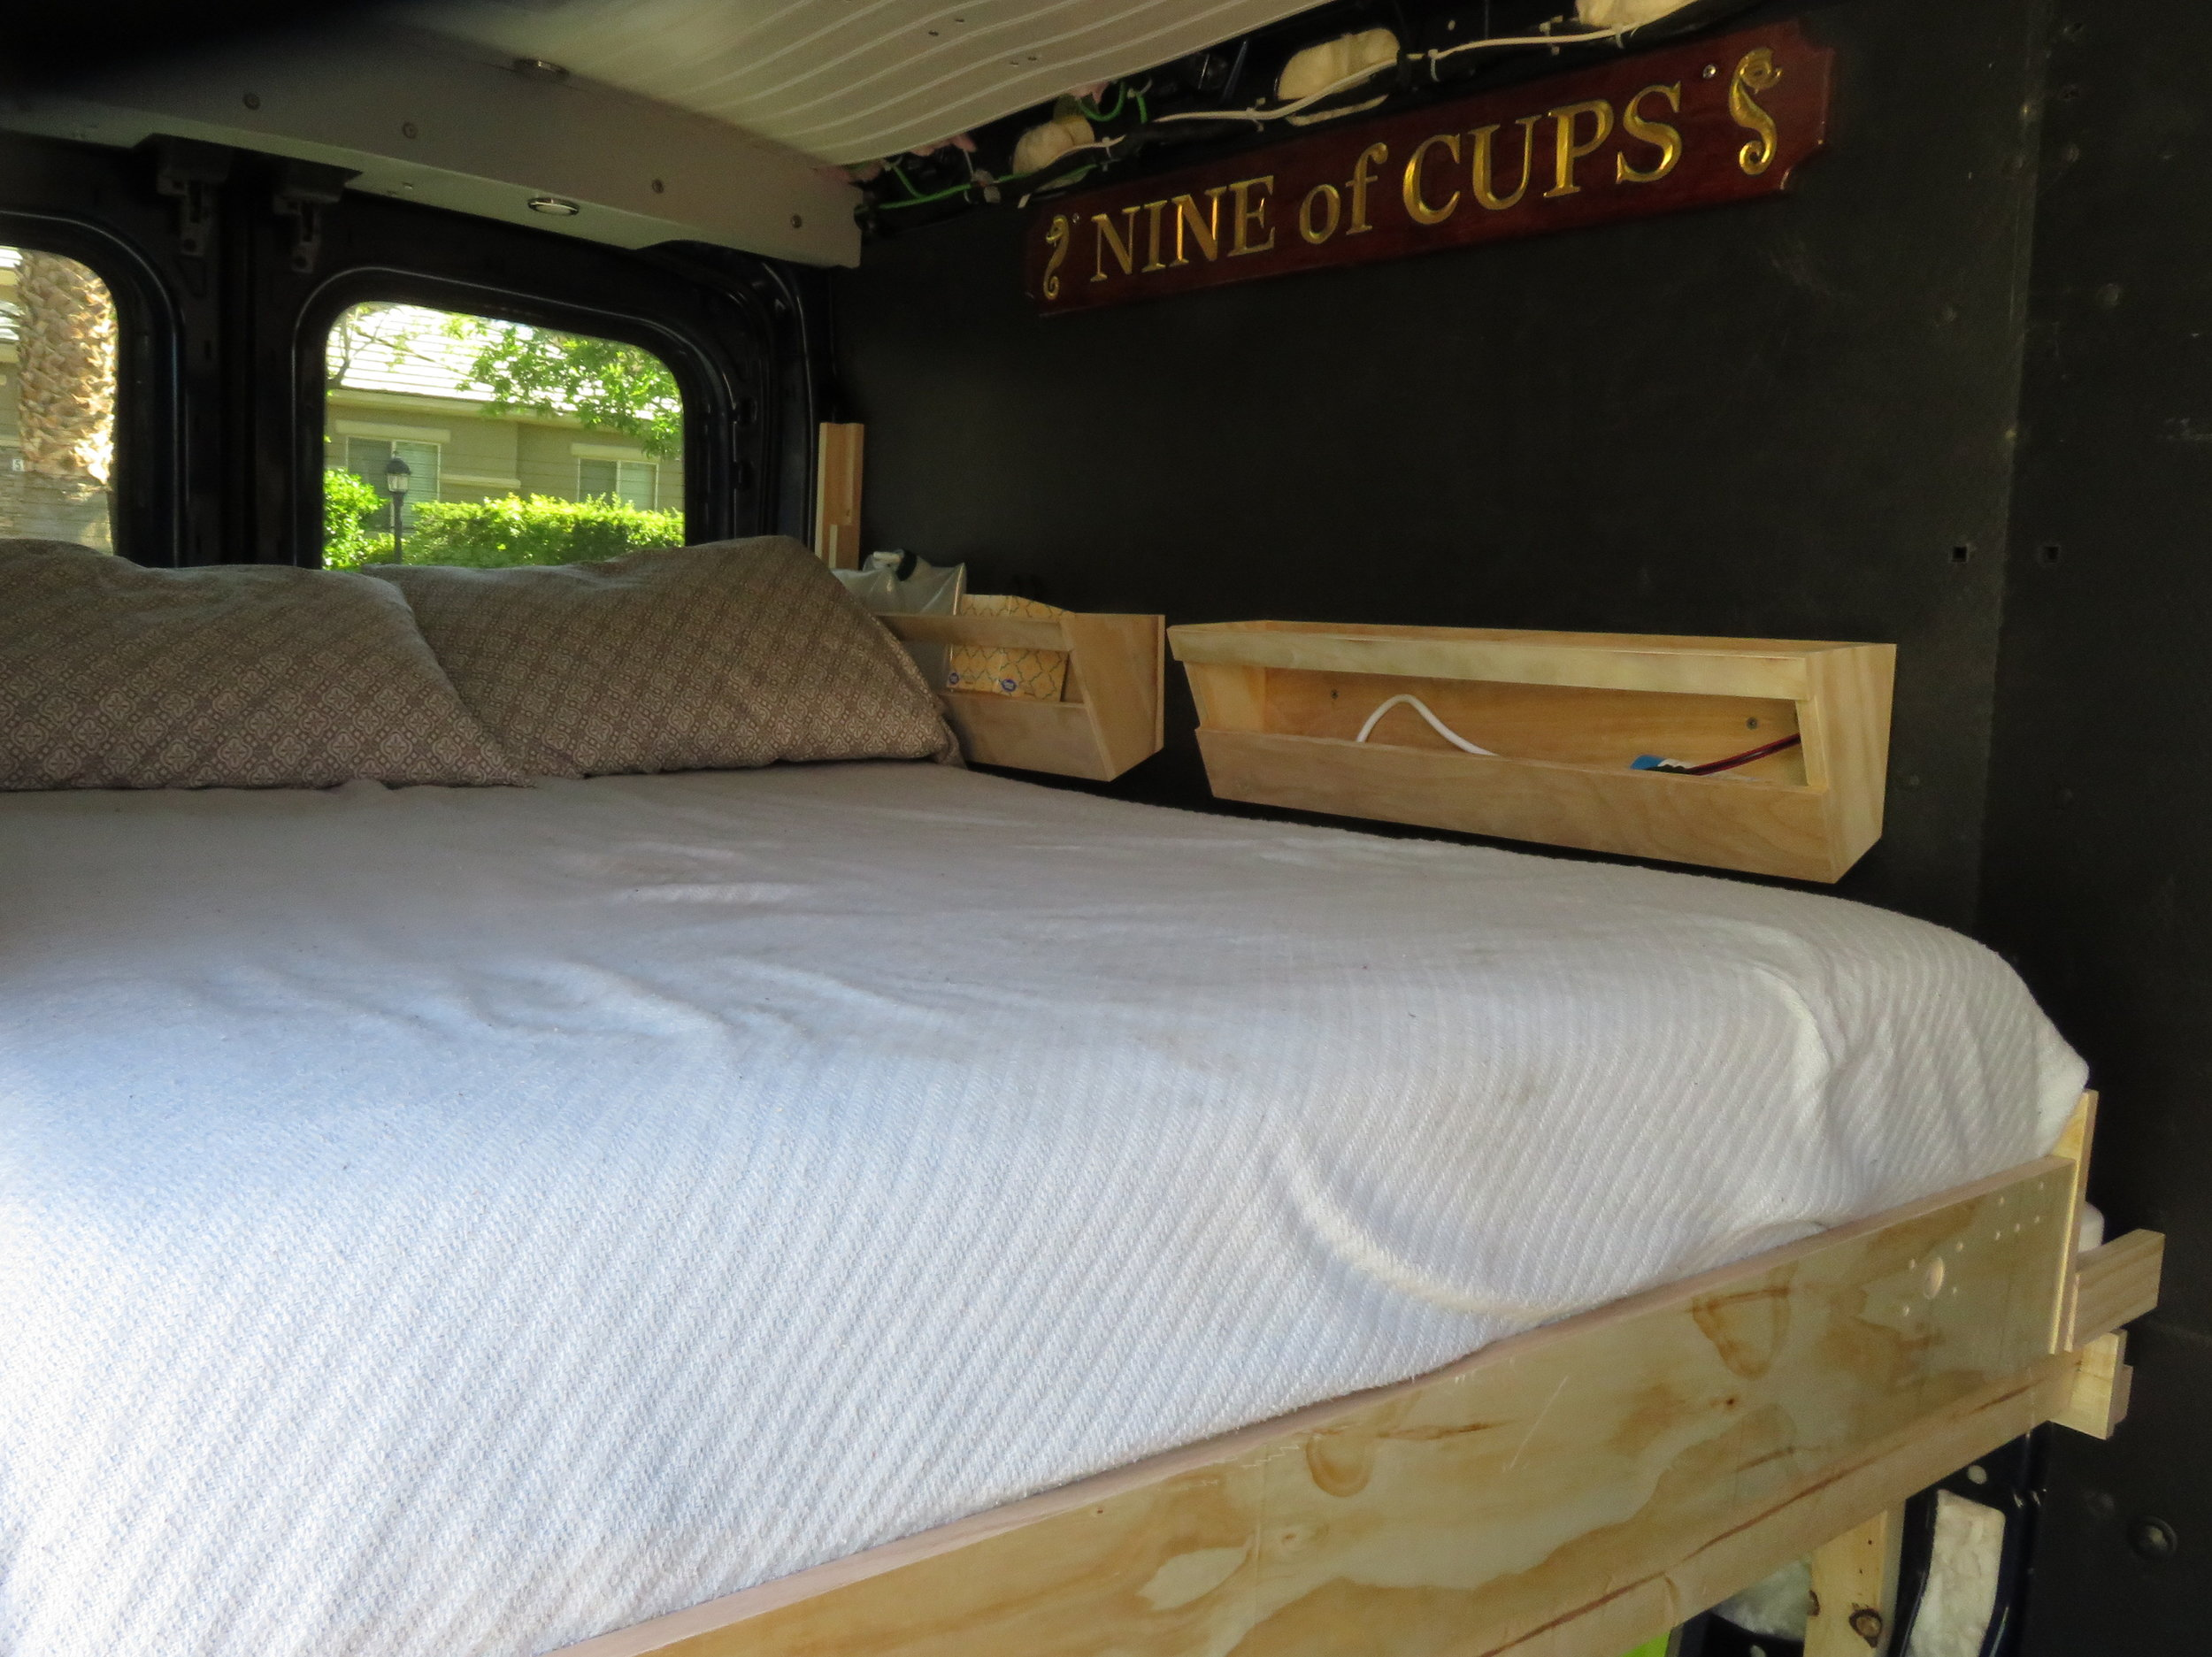 The last detail … David mounted our 'Nine of Cups' sign board the bed … a fond reminder of our world travels past and all the miles and adventures that lie ahead.